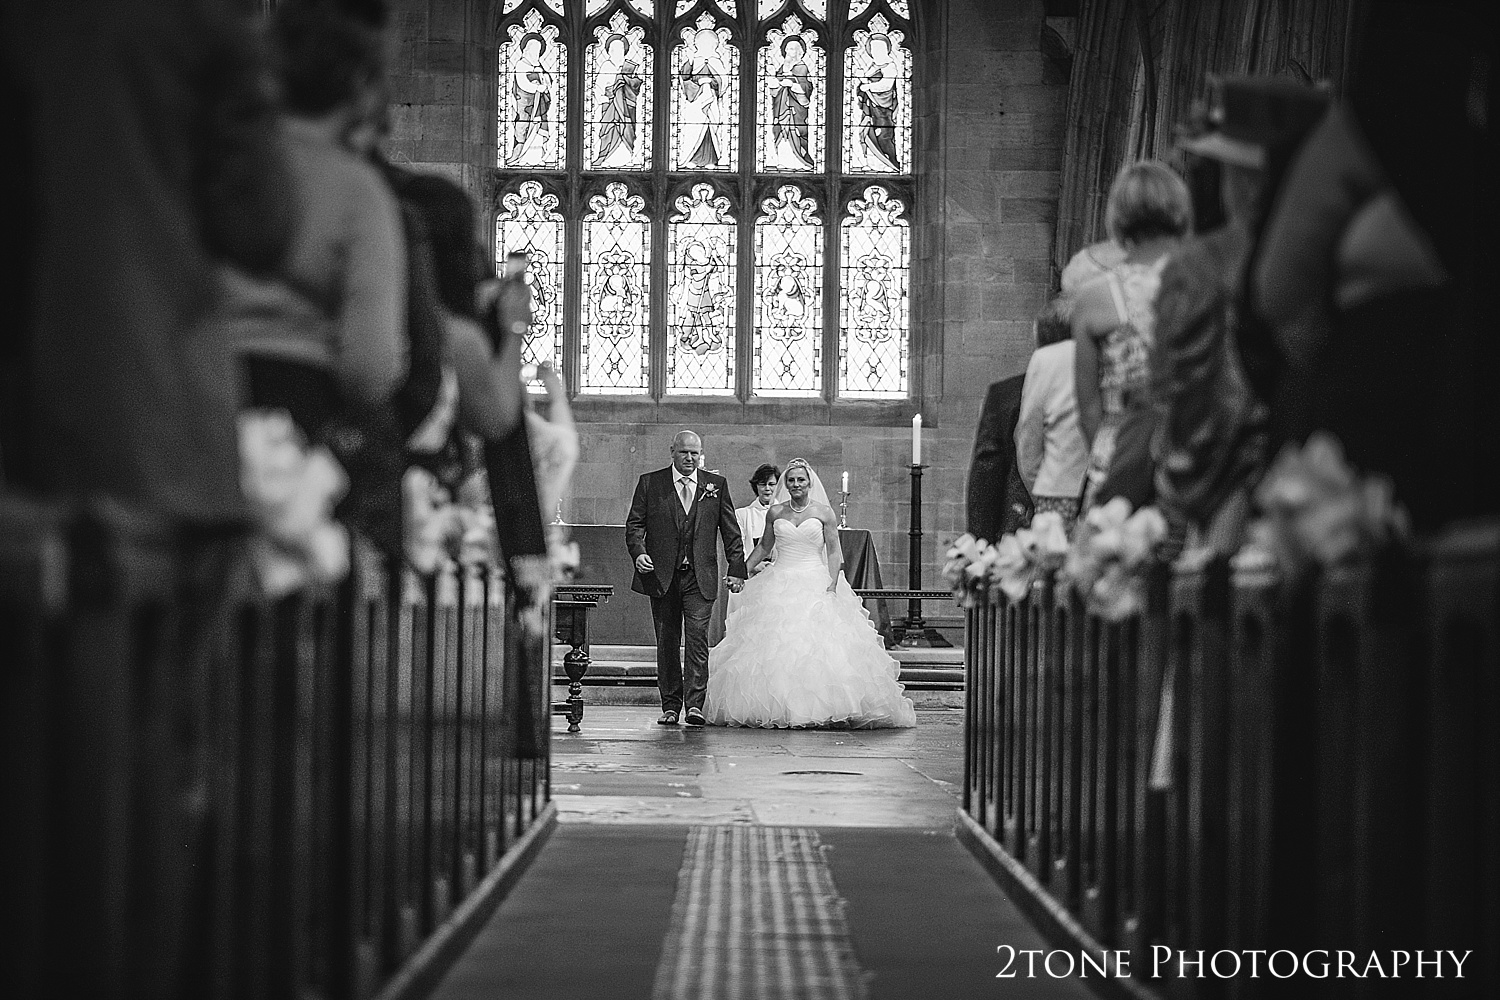 Alnwick church wedding by Newcastle and Durham based wedding photographers www.2tonephotography.co.uk